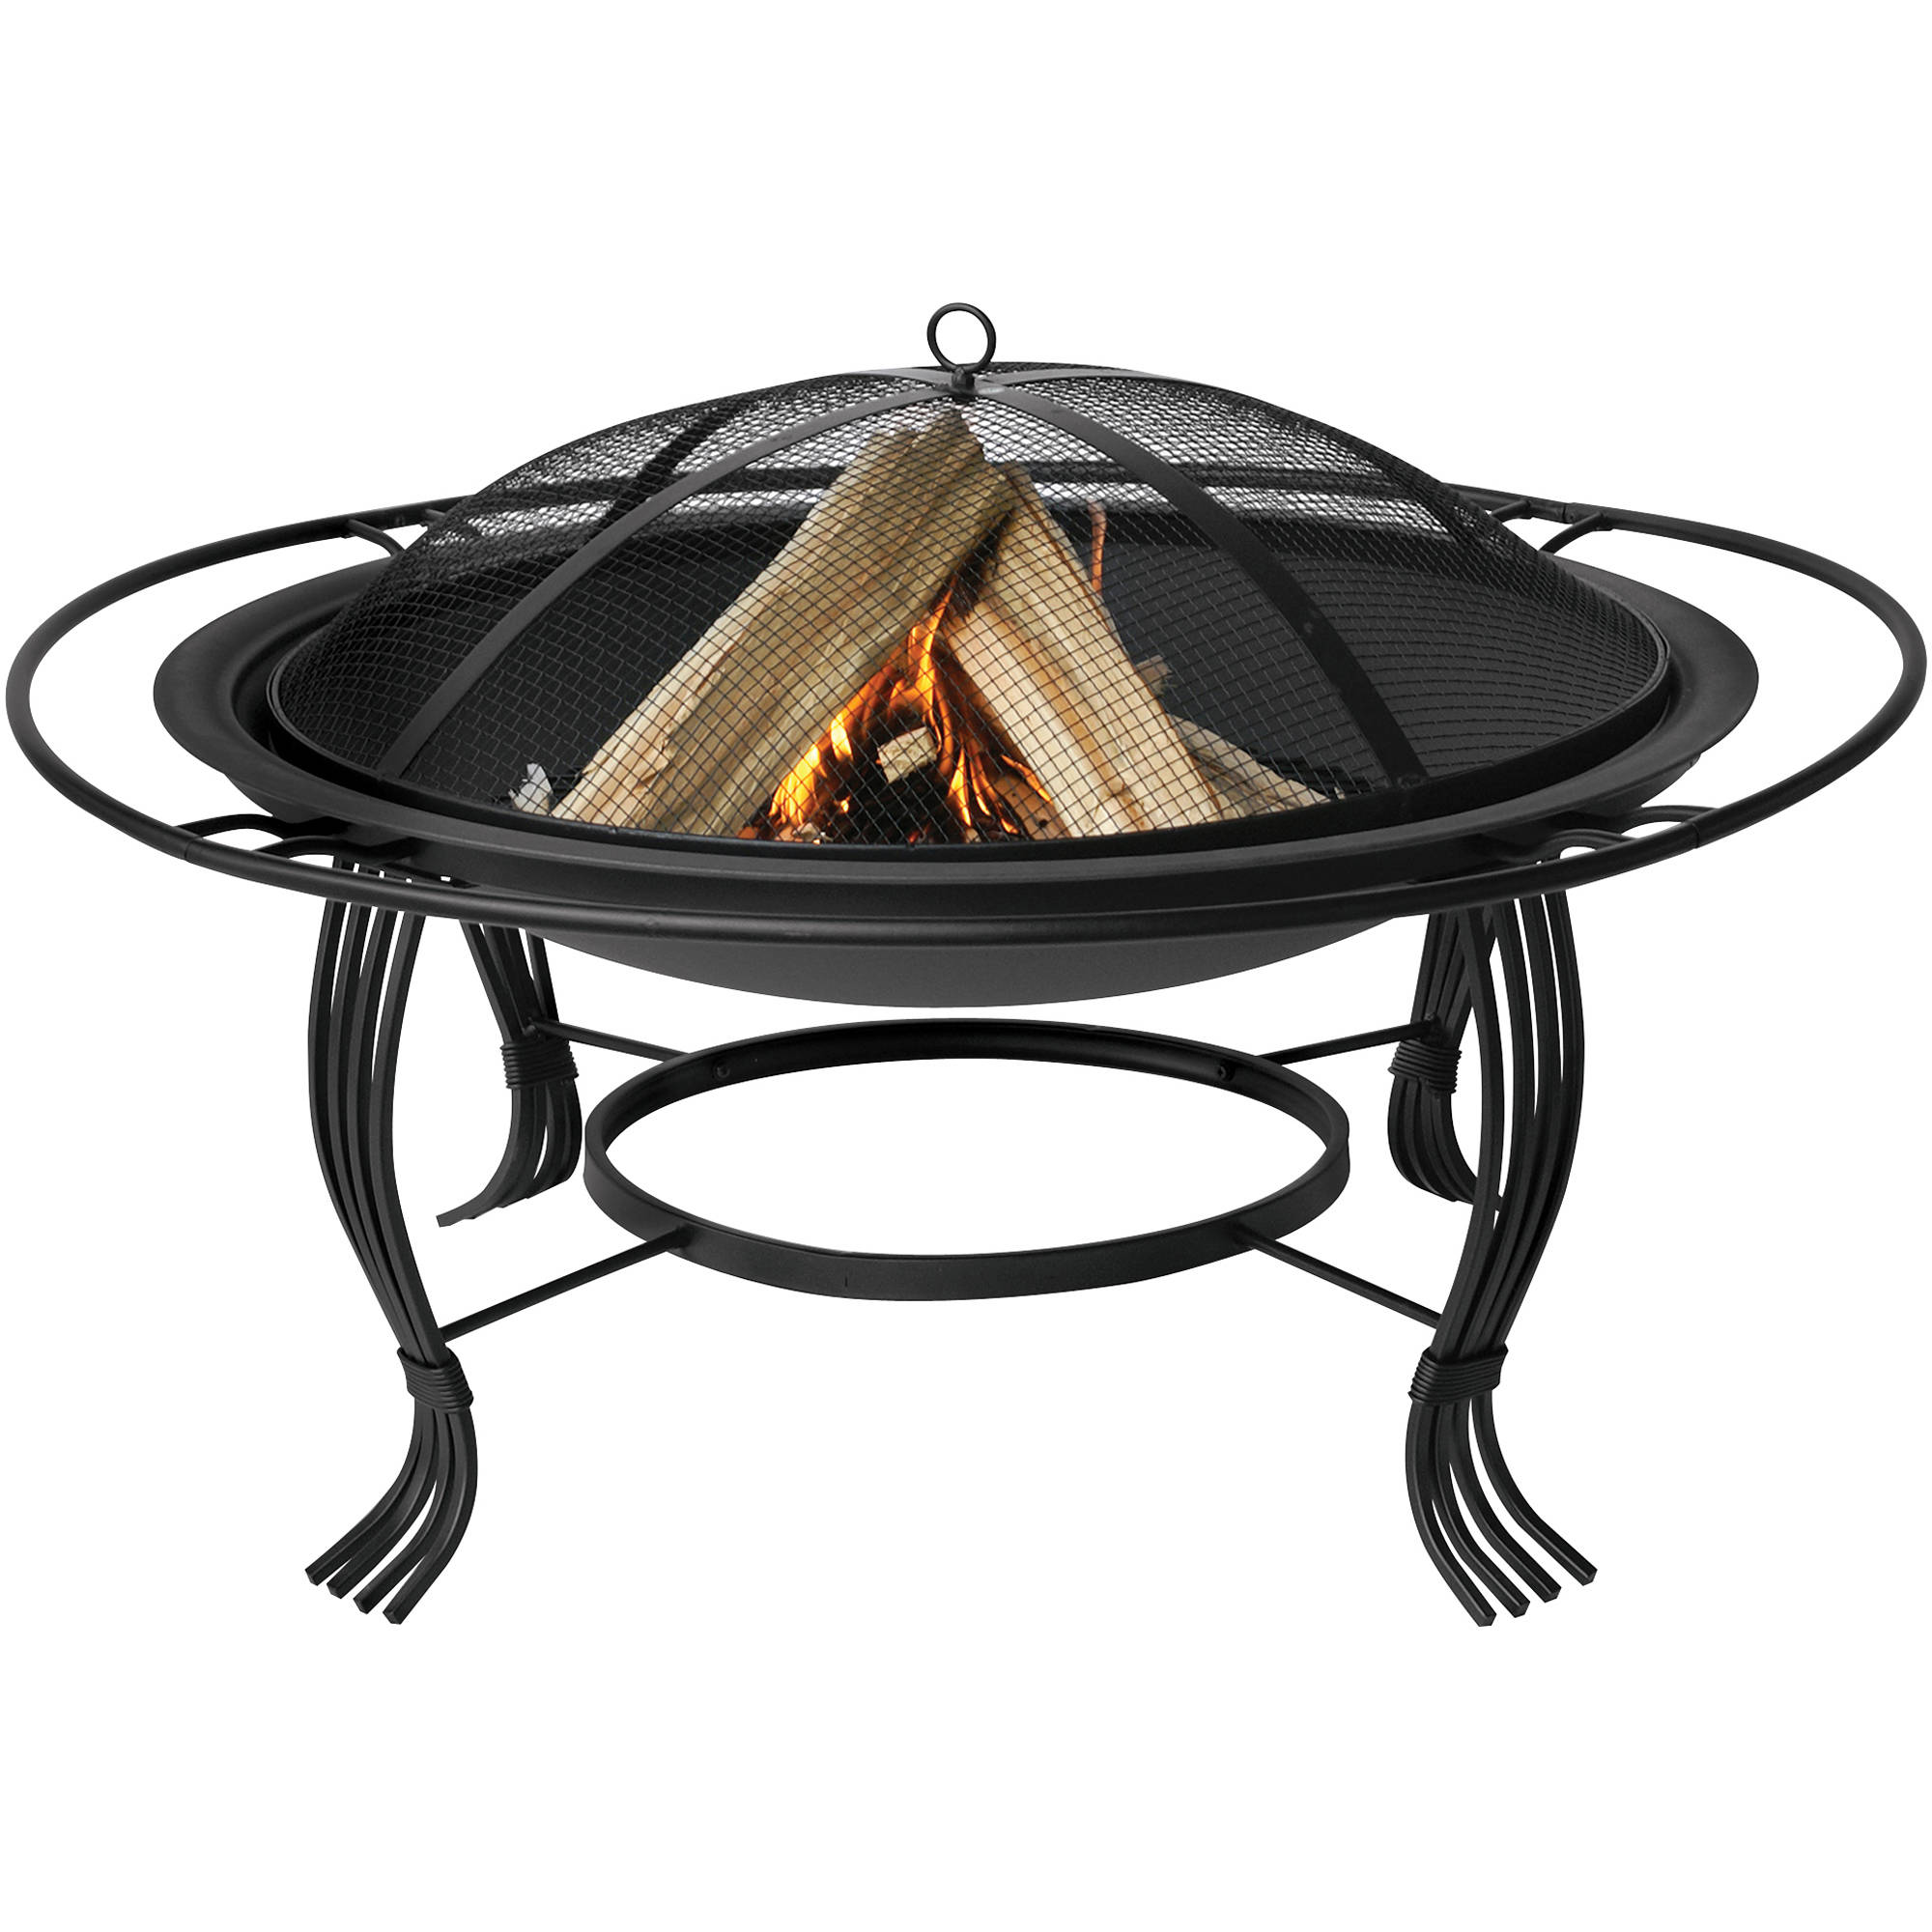 Uniflame Fire Pit Bowl with Outer Ring, Black